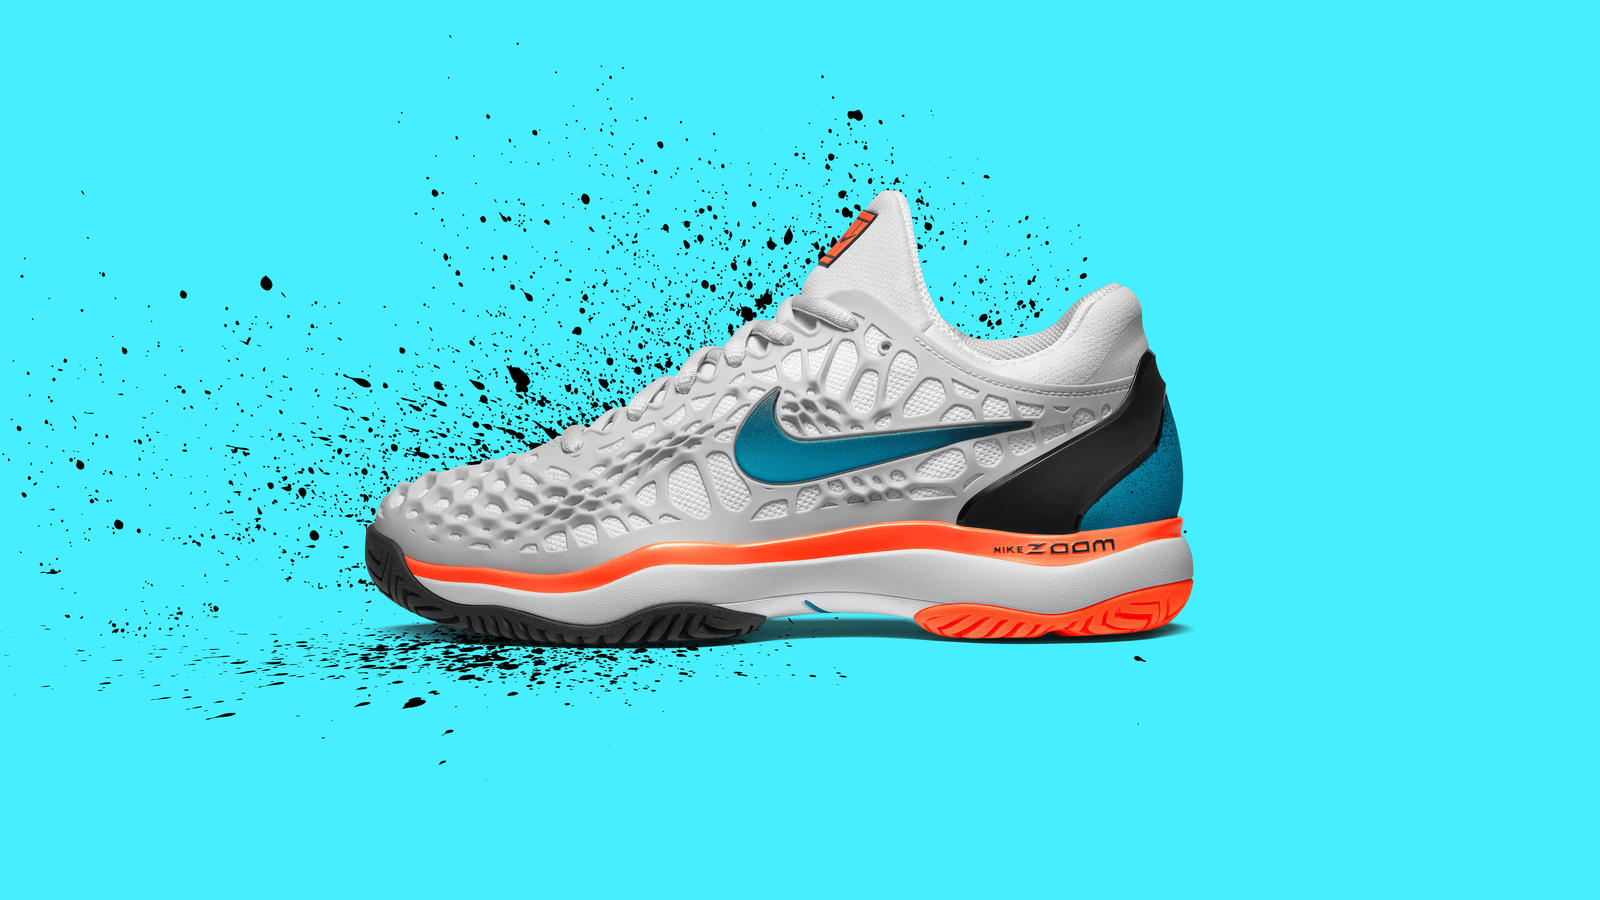 f50a2989e76 The NikeCourt Fresh Pack - Nike News